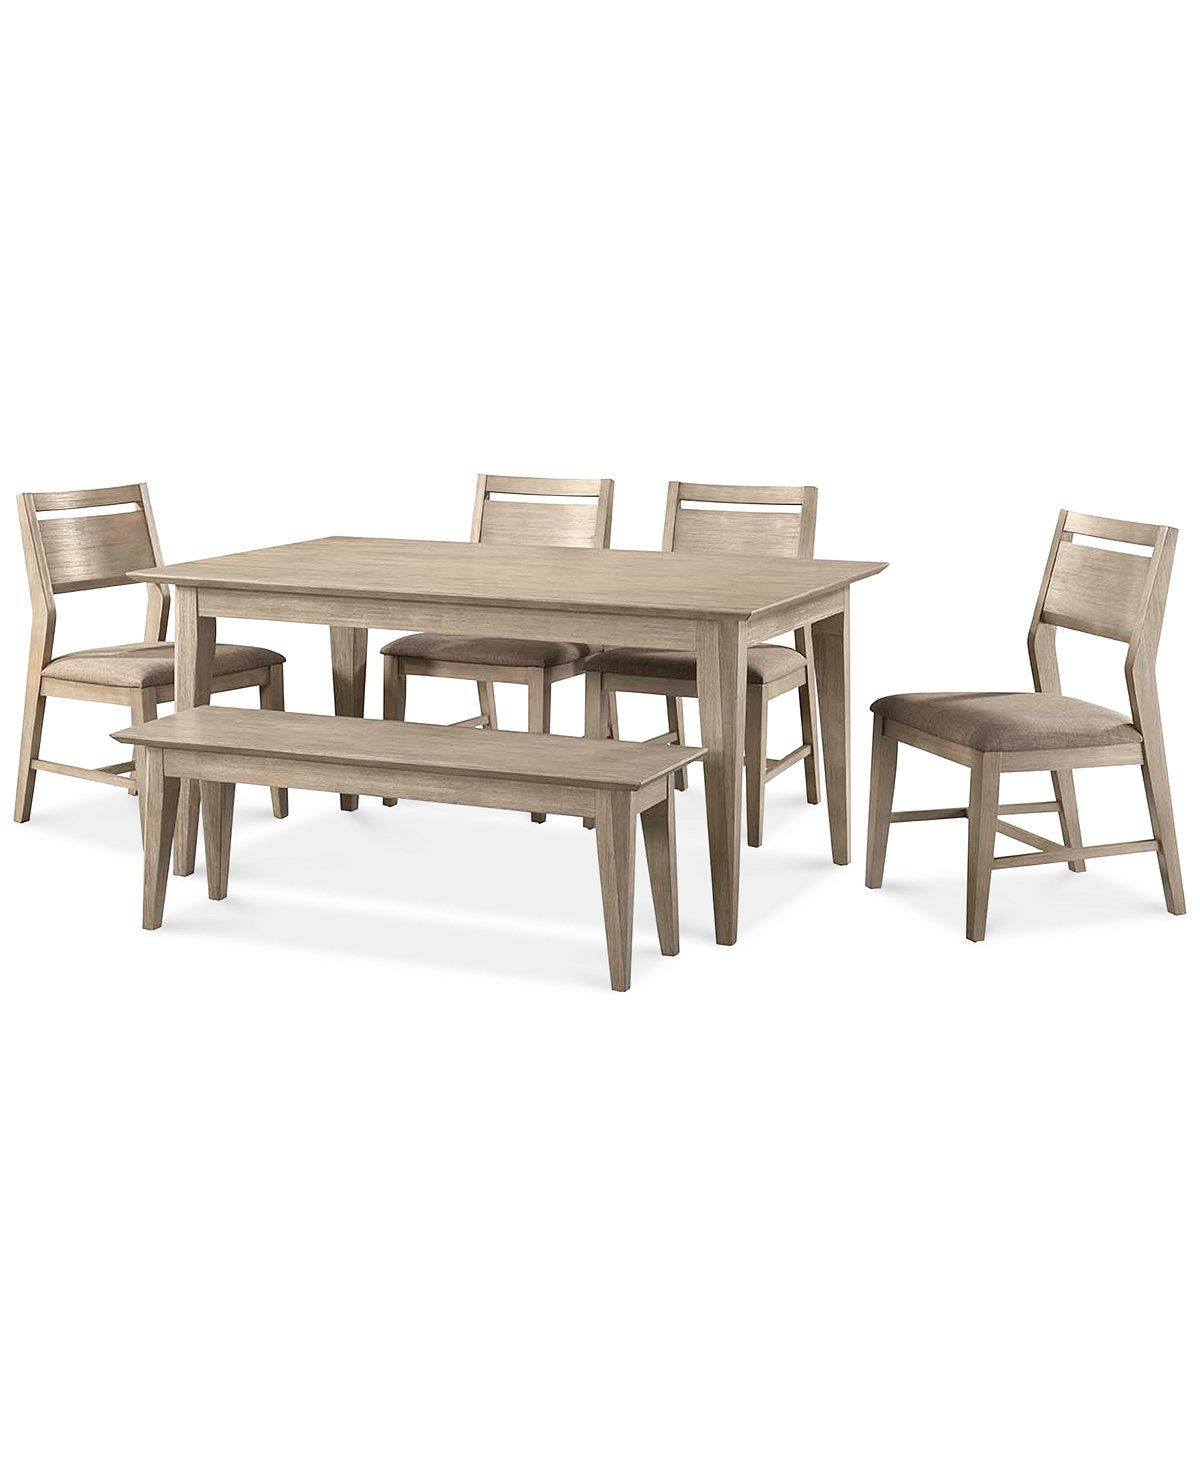 Kips Cove Dining Furniture 6 Pc Set Dining Table 4 Side Chairs